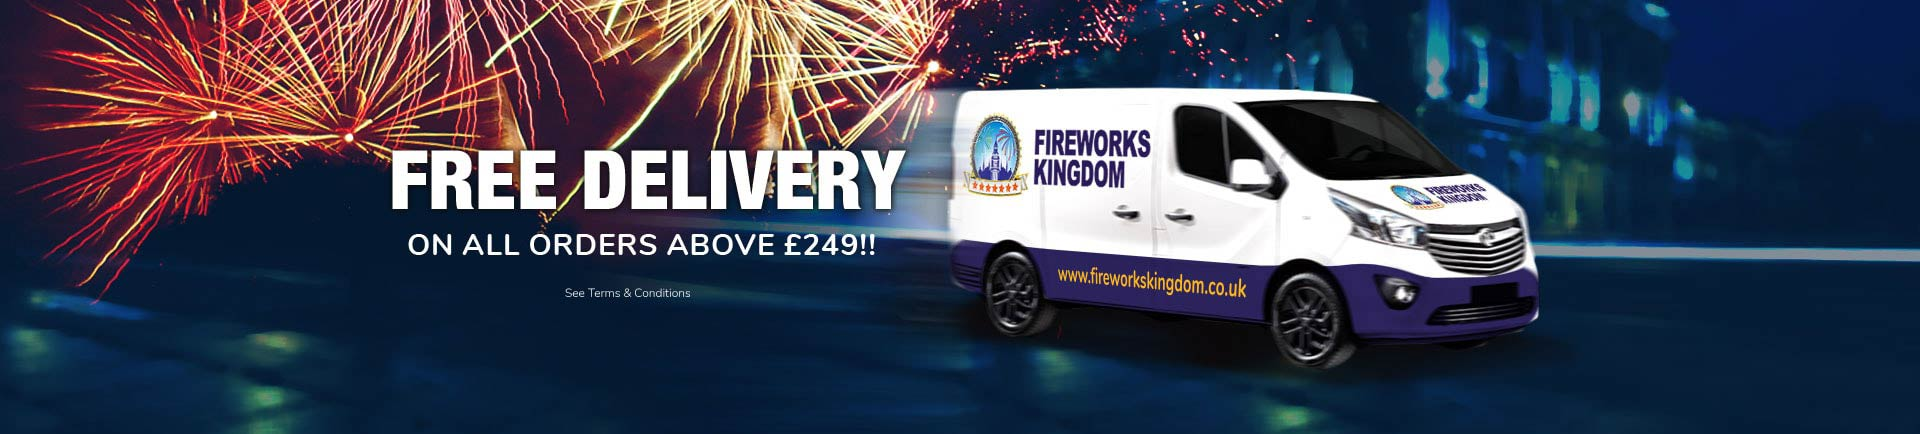 Free Fireworks Delivery on all orders above £249